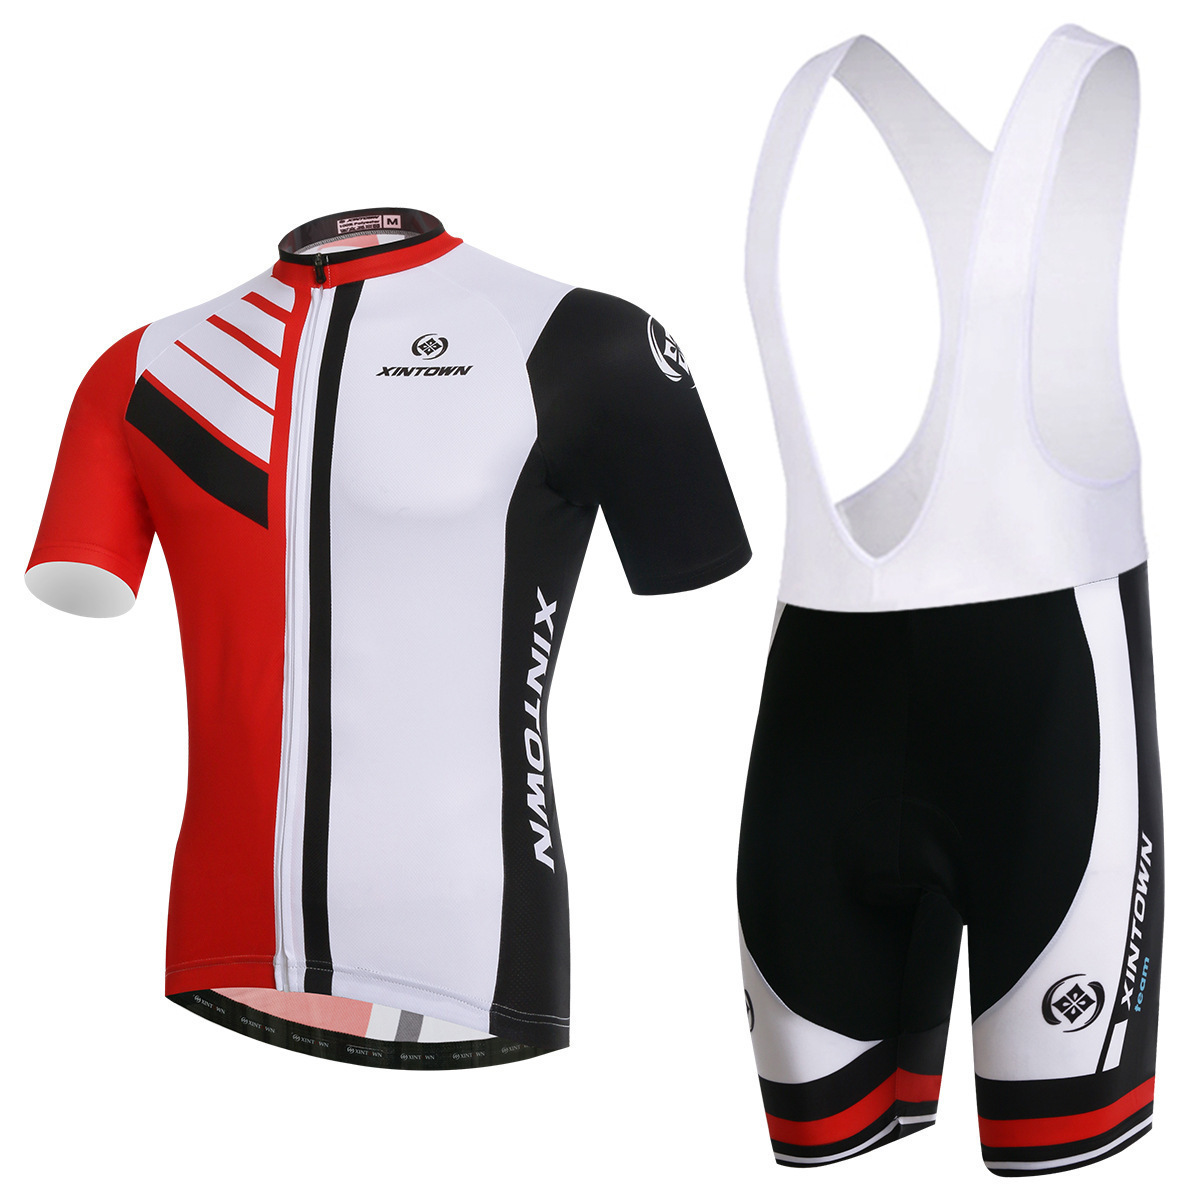 XINTOWN Cycling Jersey Sets Summer Men Team Short Sleeve Set Bike Quick Dry Bib Breathable Sport Cycling Clothing Ropa Ciclismo 2018 pro team ale cycling jersey bicycle clothing short sleeve shirt 9d pad bib shorts set breathable quick dry ropa ciclismo